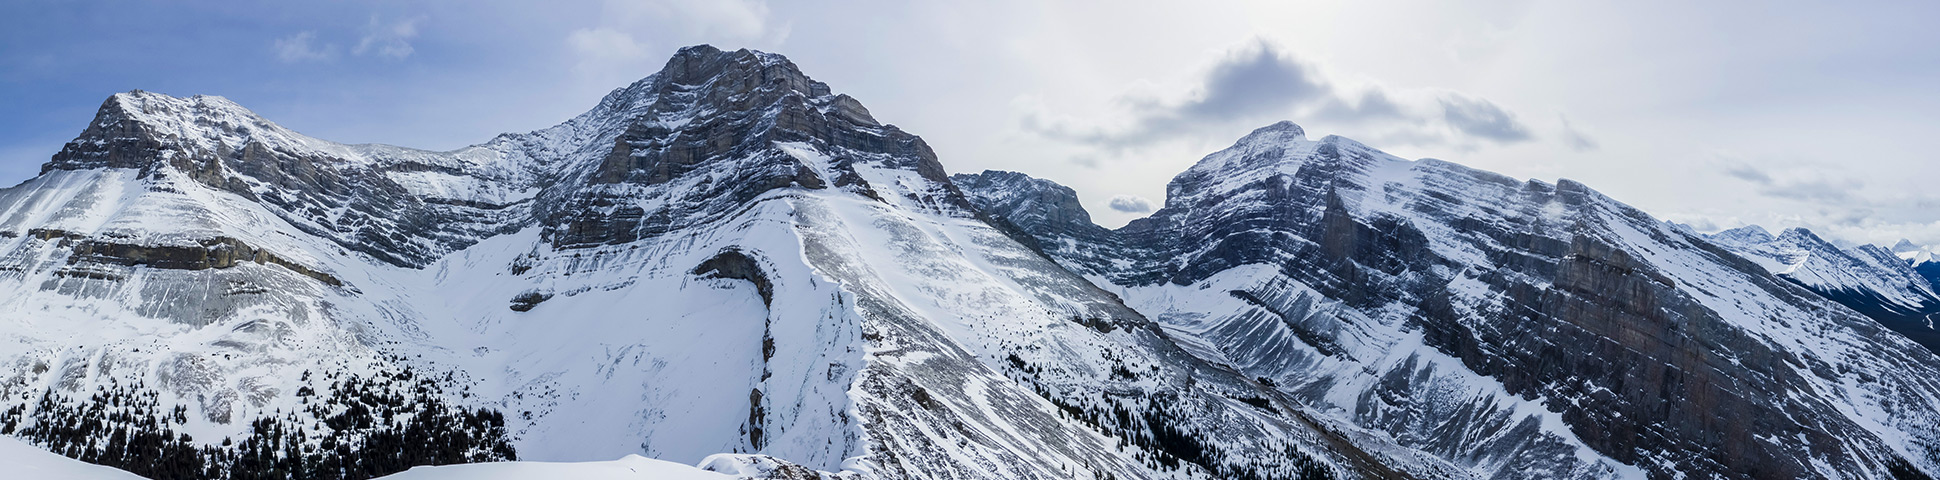 Panorama of Little Lougheed snowshoeing trail in Kananaskis near Canmore